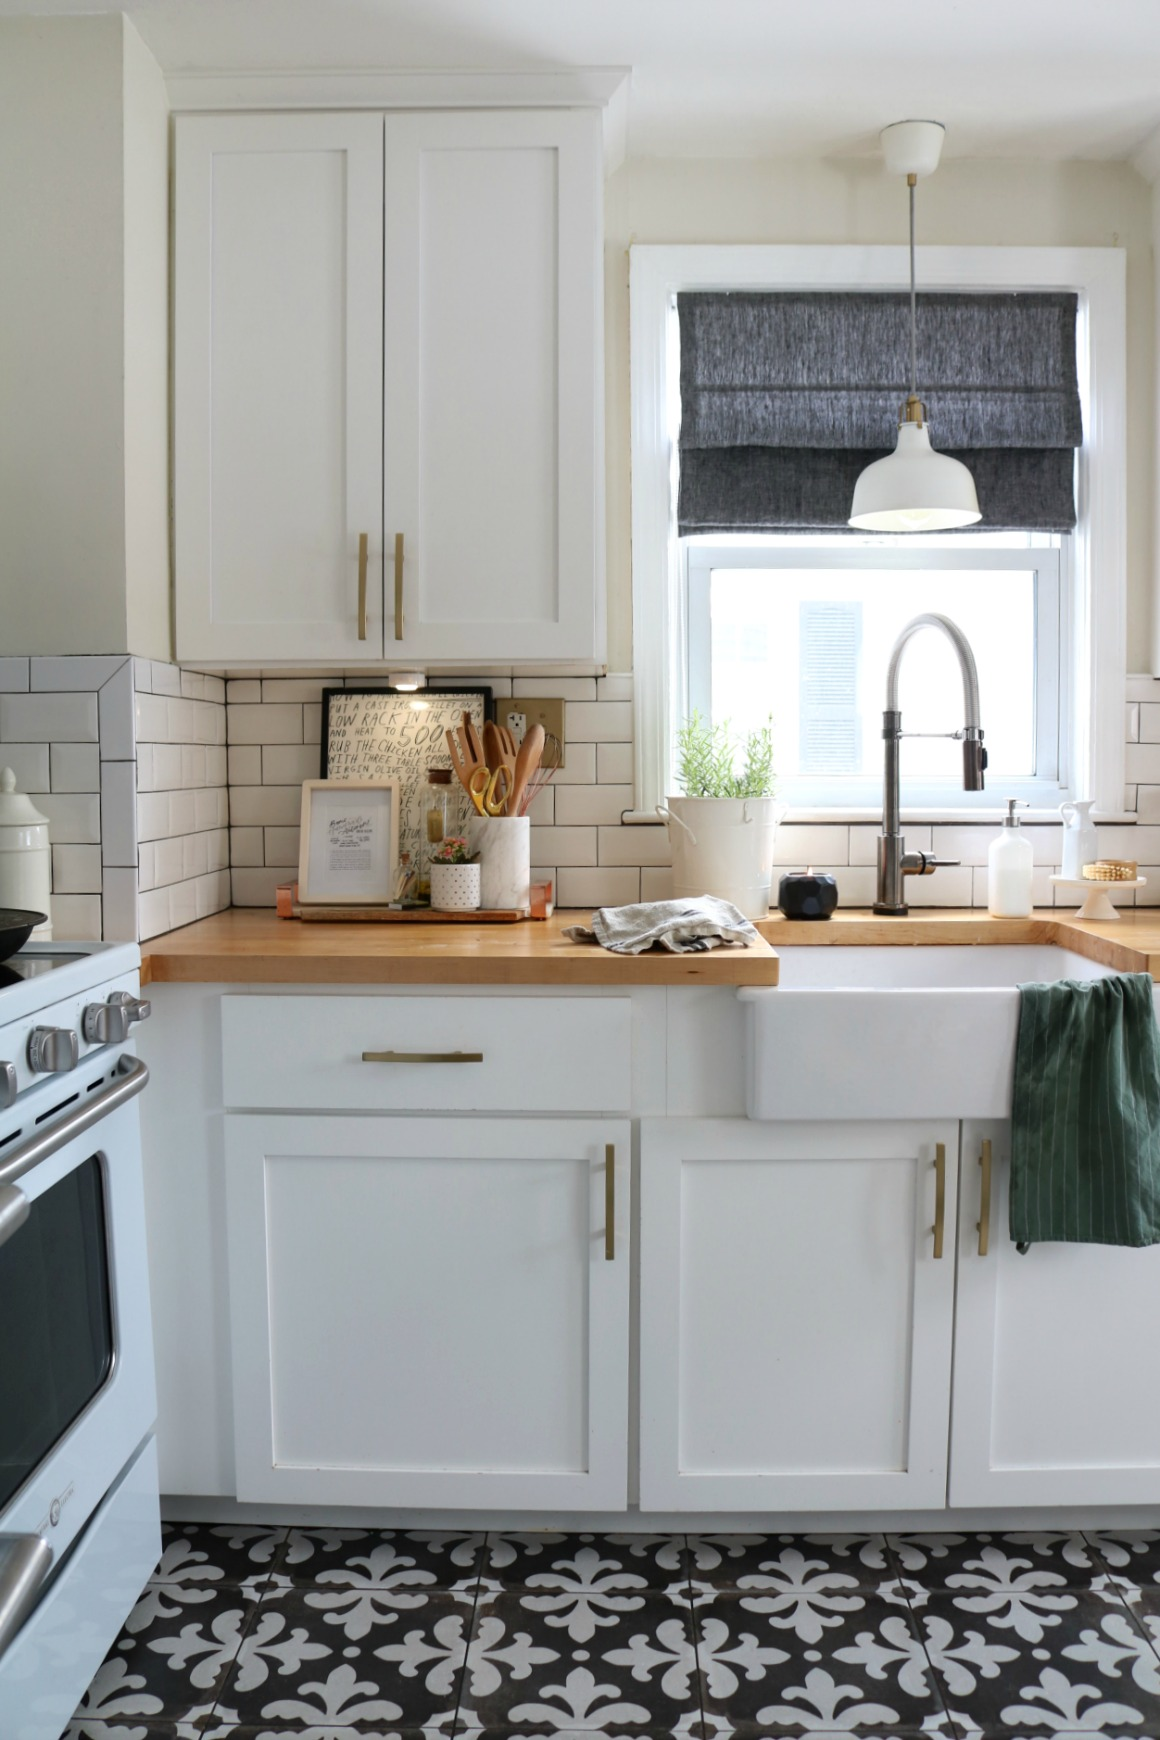 Tips For Kitchen Color Ideas: How To Mix Metals In The Kitchen And Our Kitchen Faucet